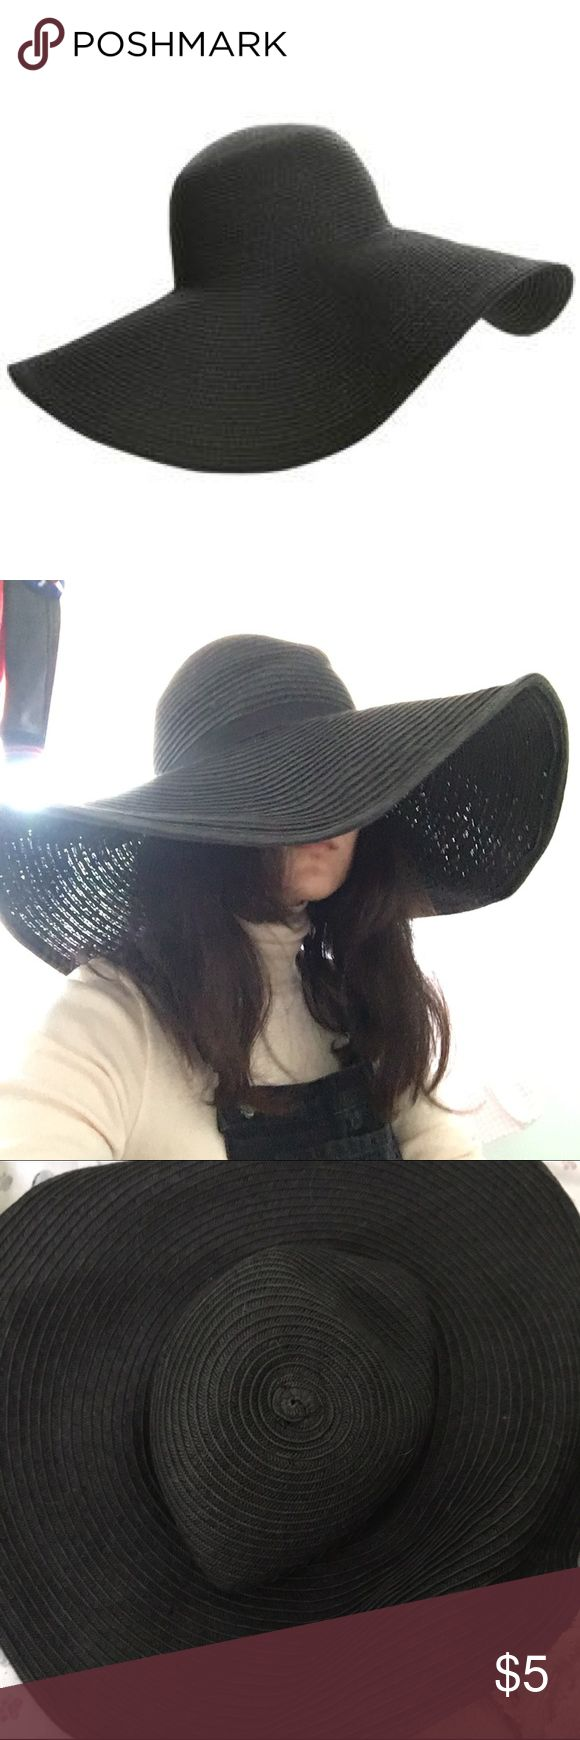 Very Big Black Floppy Hat from H&M Very big black floppy hat from H&M. Wrinkled at the top part of the hat, but can most likely be fixed with some work.  I don't really want the hat anymore, nice for monochrome beach outfits. Considered M/56 sized. H&M Accessories Hats